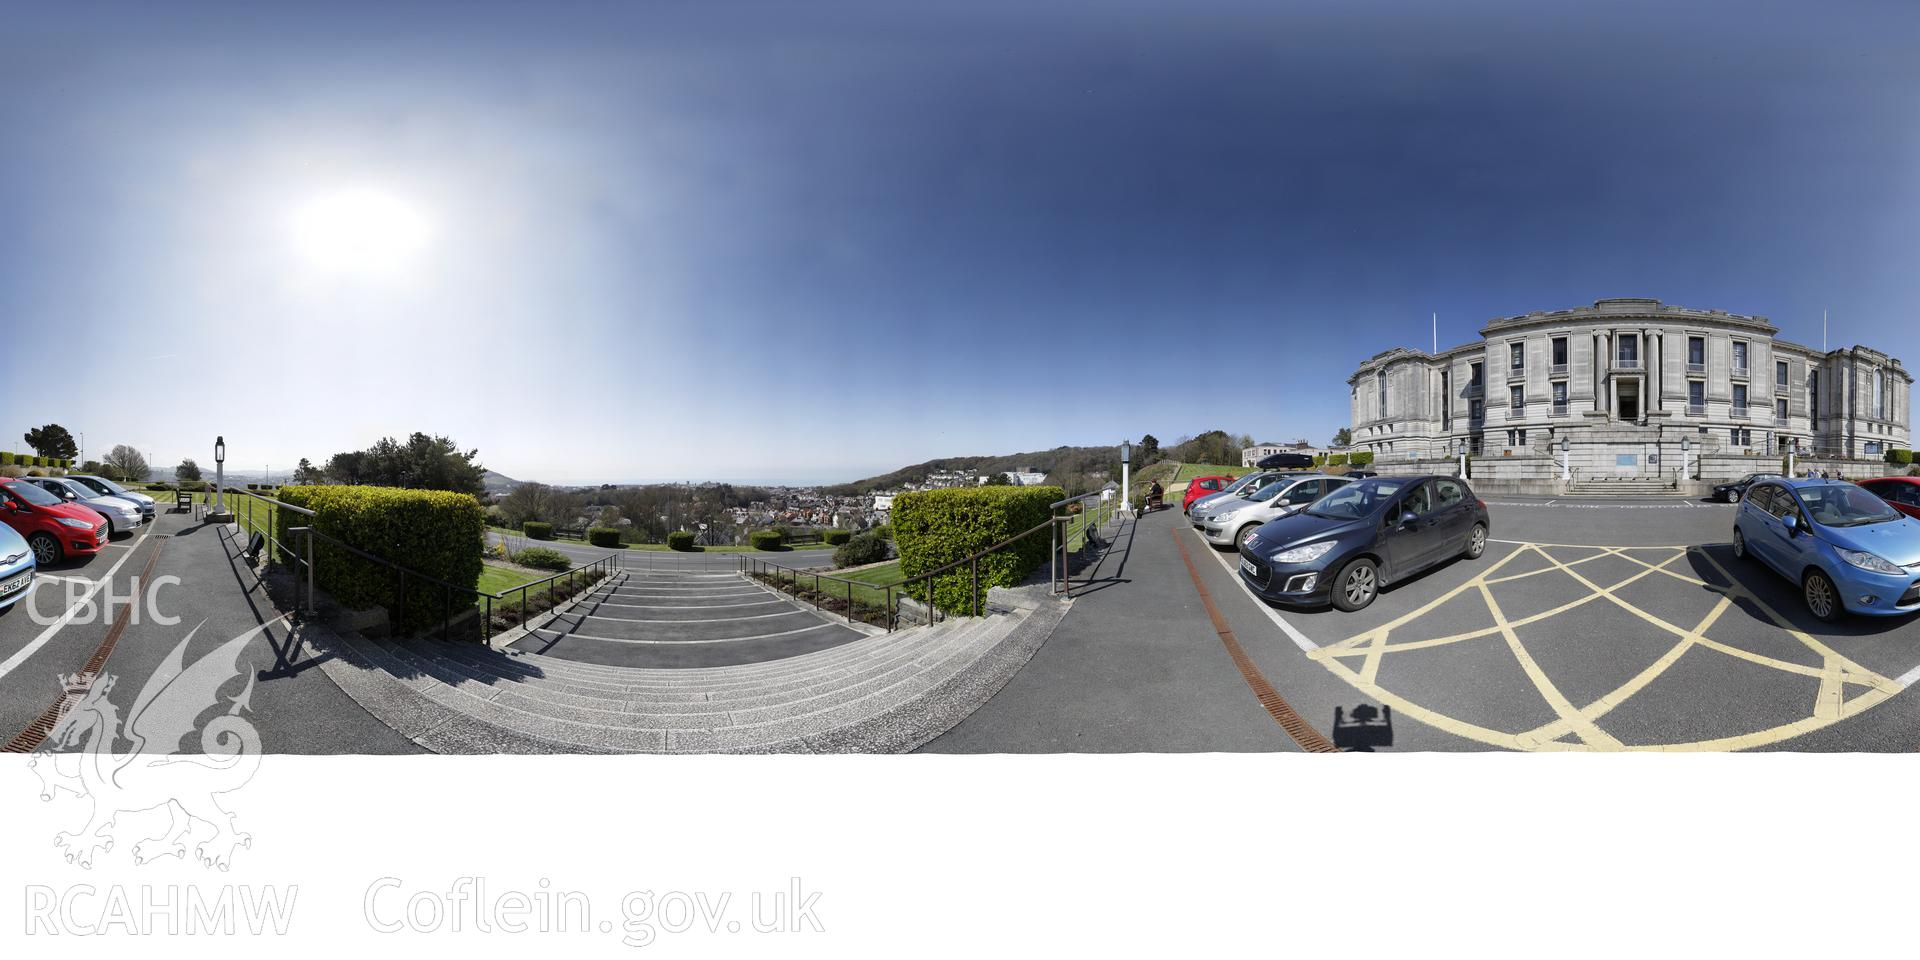 Reduced resolution Tiff of stitched images from in front of the National Library of Wales, Aberystwyth produced by Susan Fielding and Rita Singer, 2018. Produced through European Travellers to Wales project.